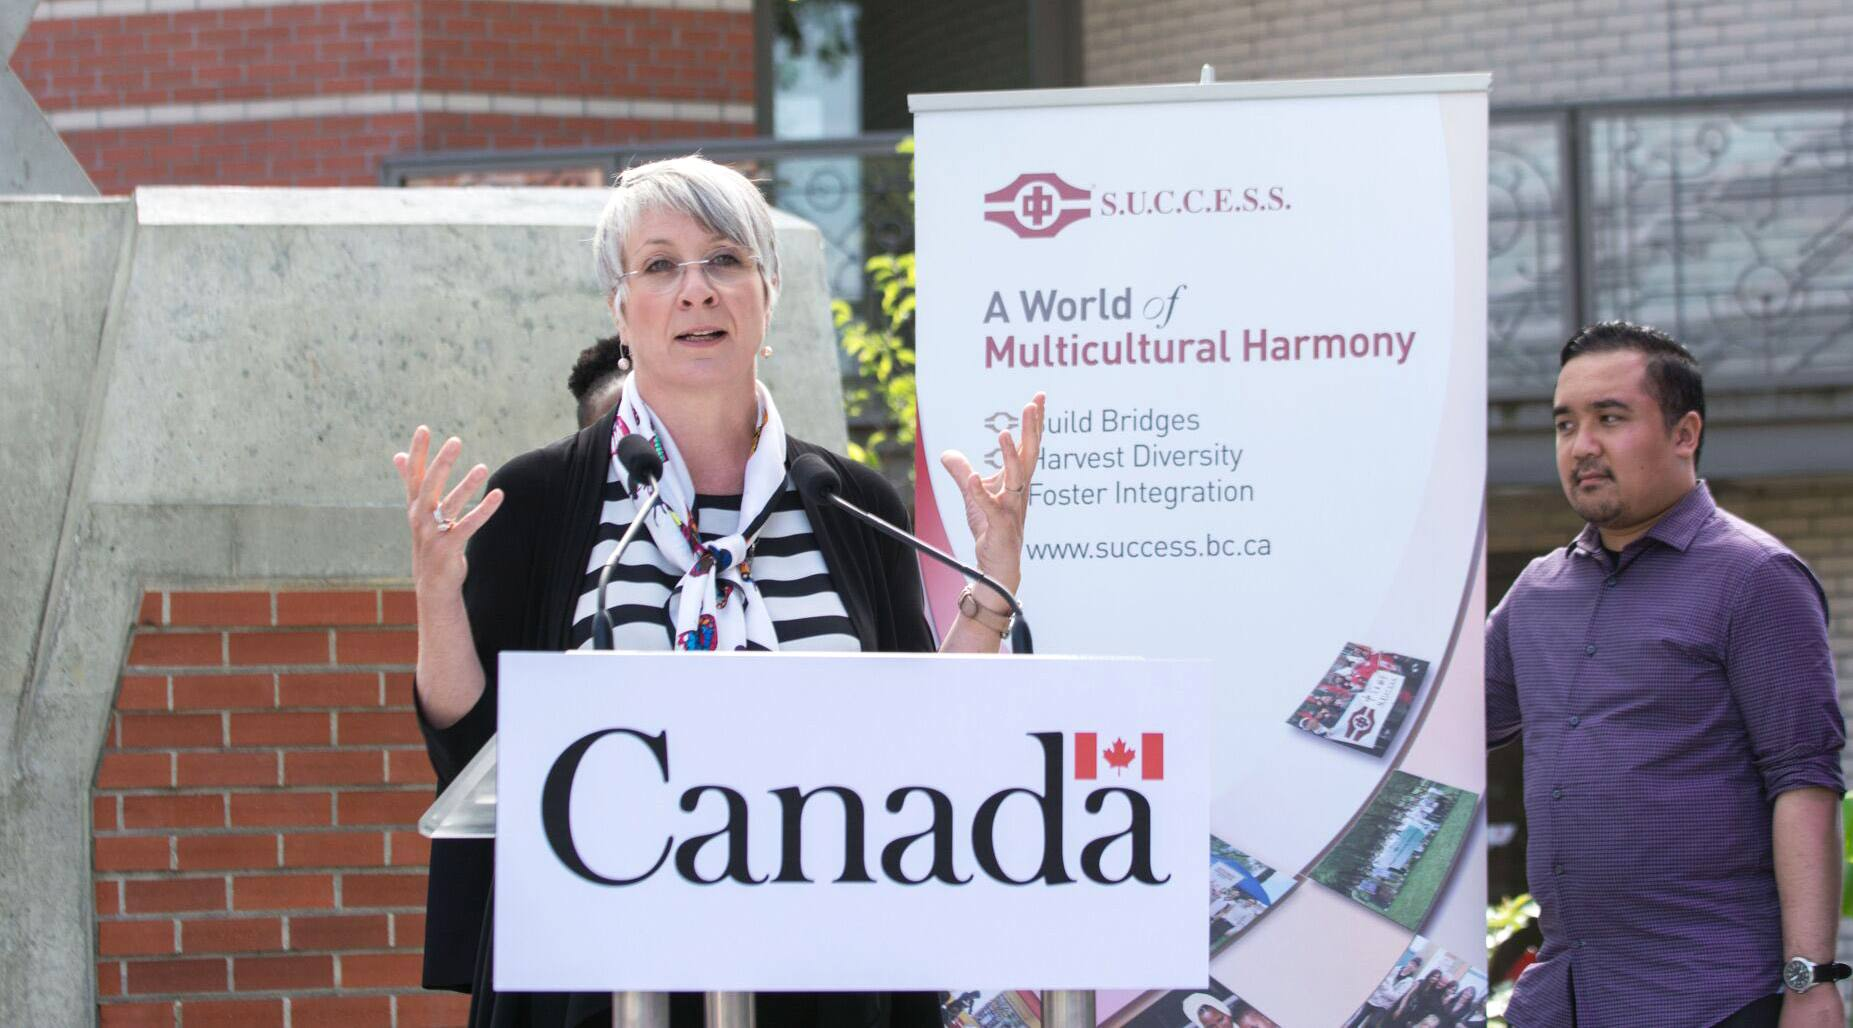 Minister Patty Hajdu speaking at S.U.C.C.E.S.S. in Port Coquitlam (S.U.C.C.E.S.S.)